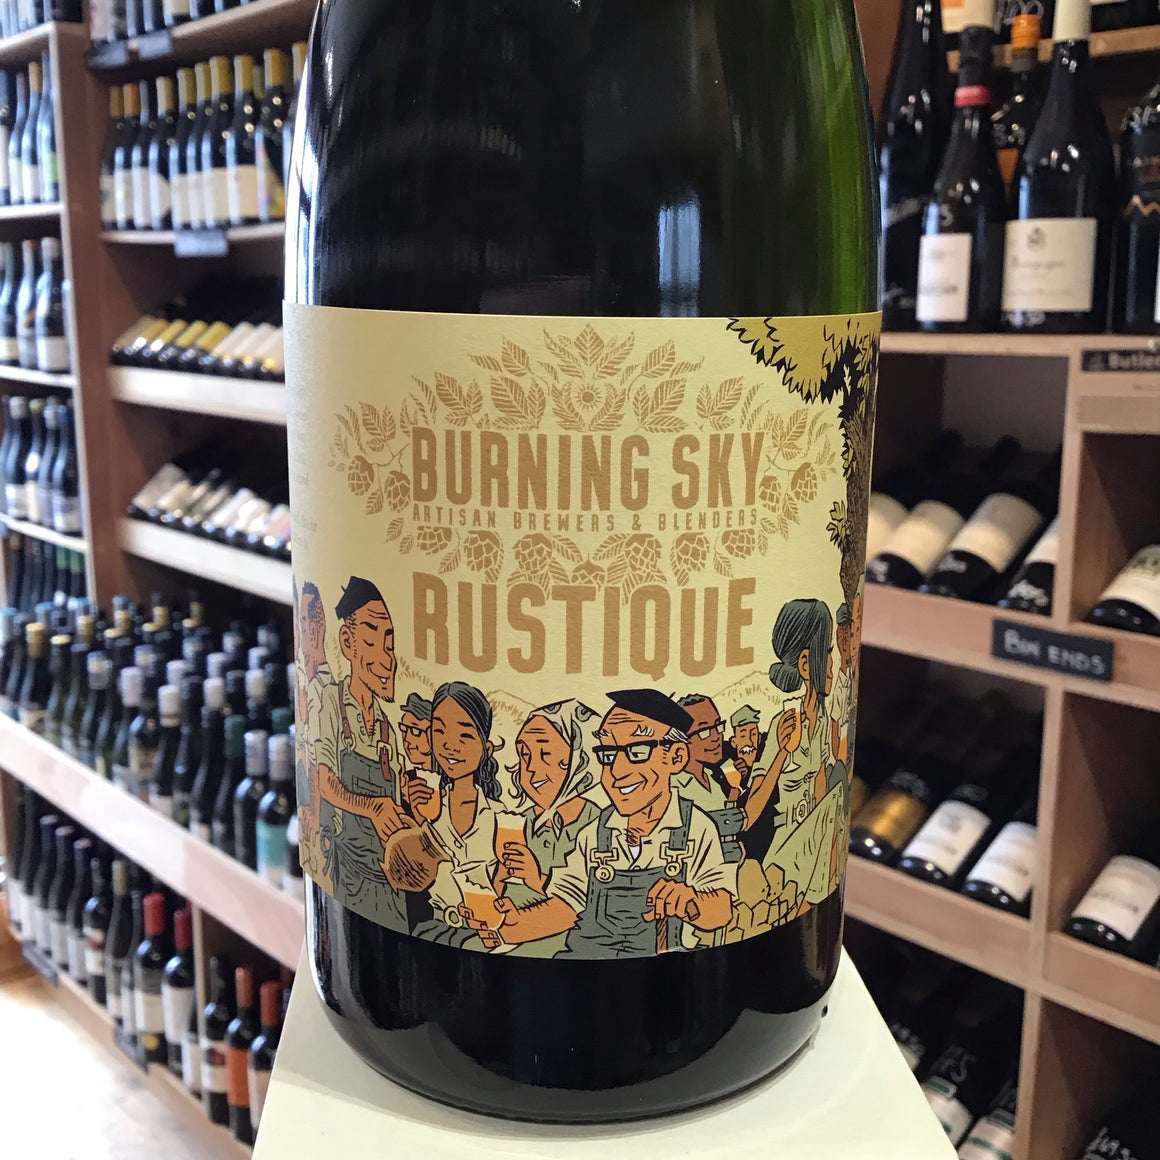 Burning Sky Rustique 75cl 8.5%